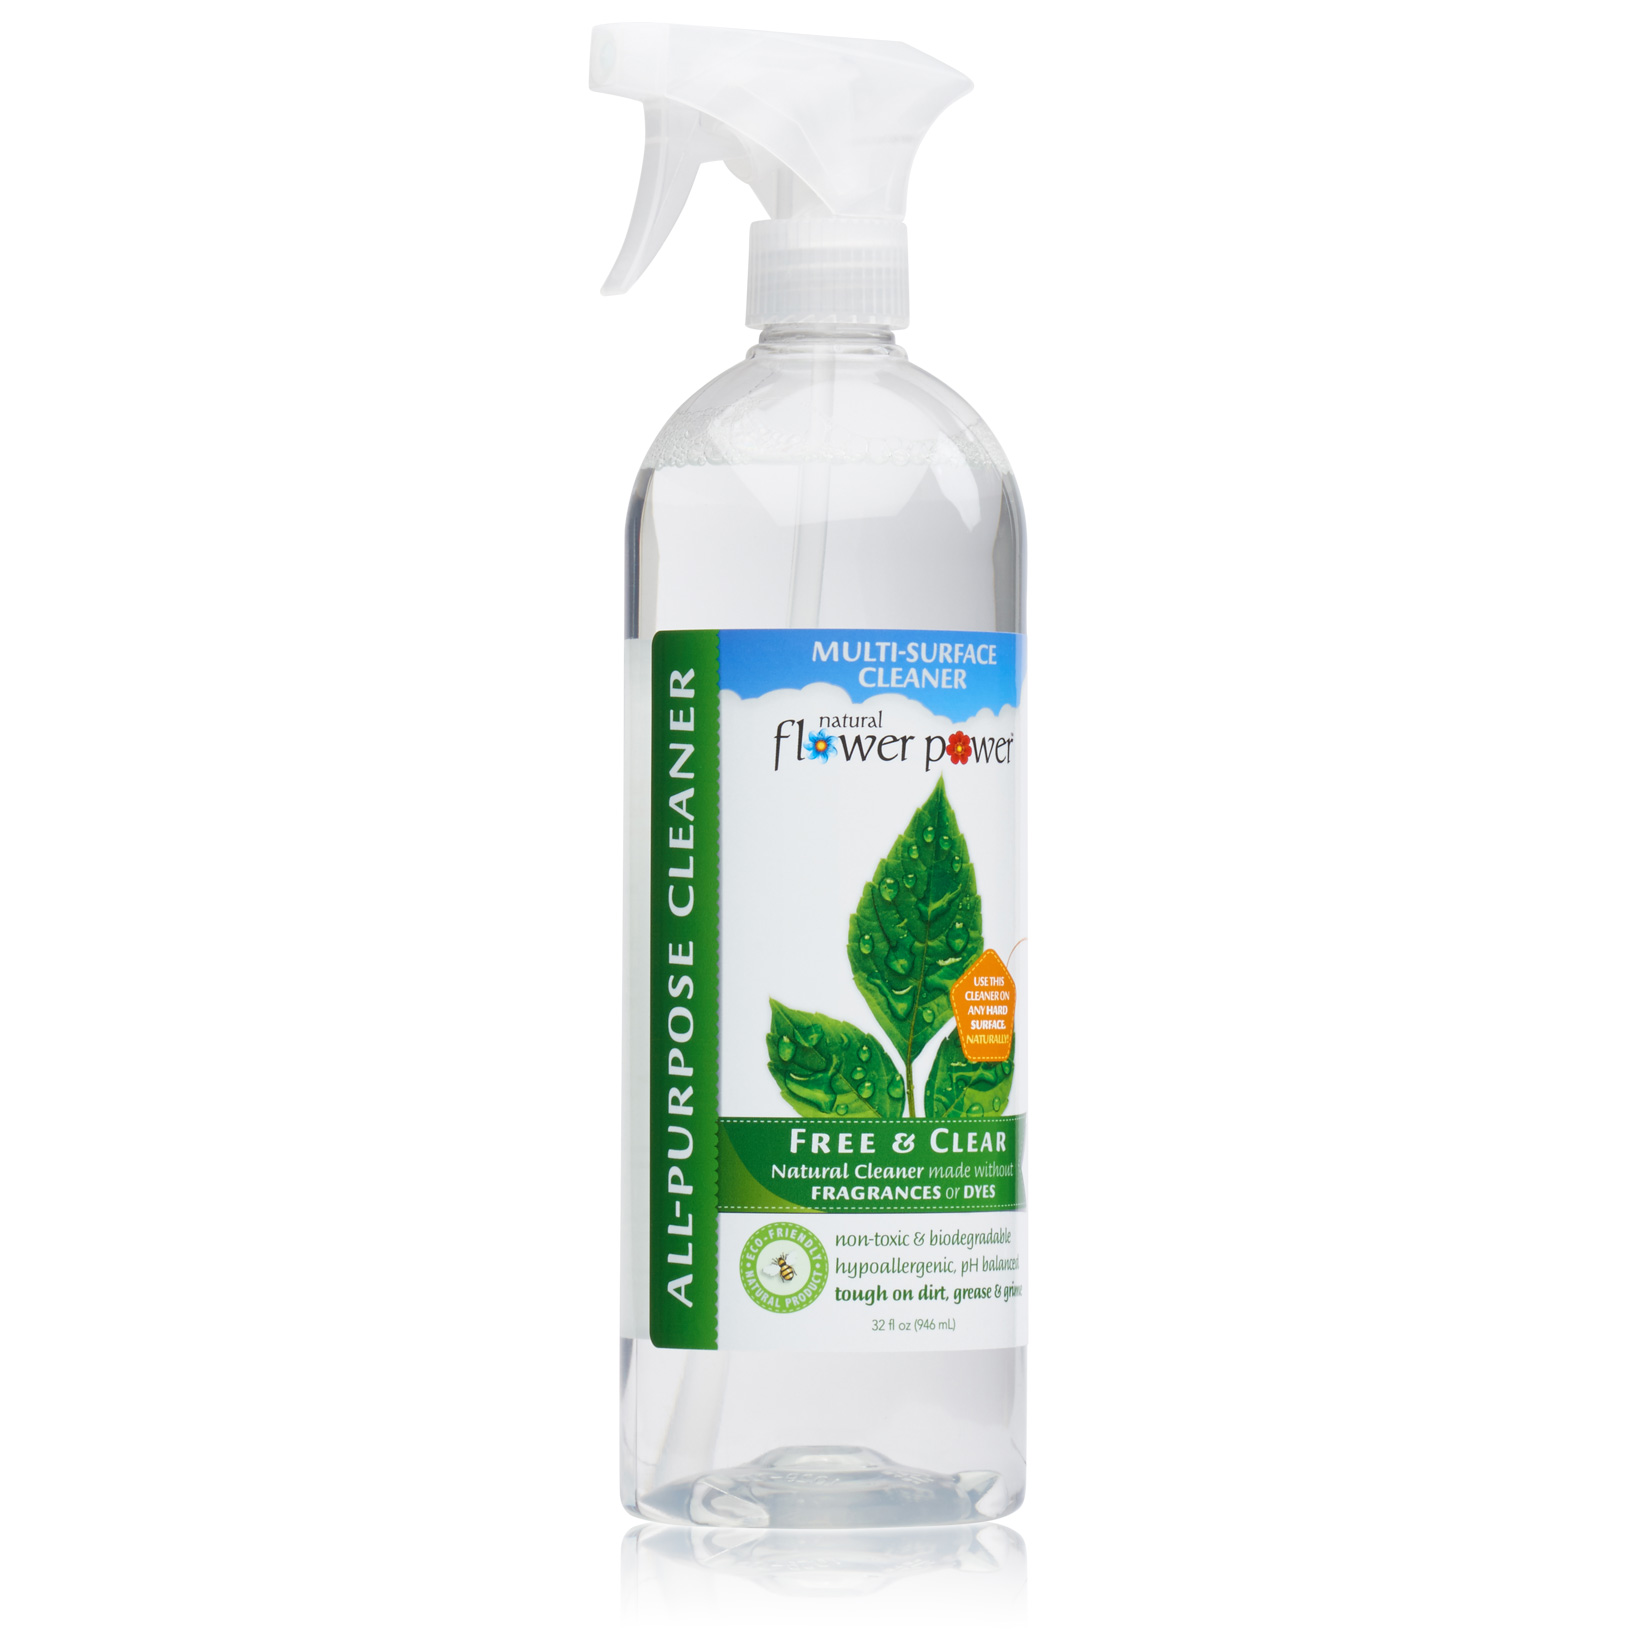 All-Purpose Cleaner Free & Clear – Profile